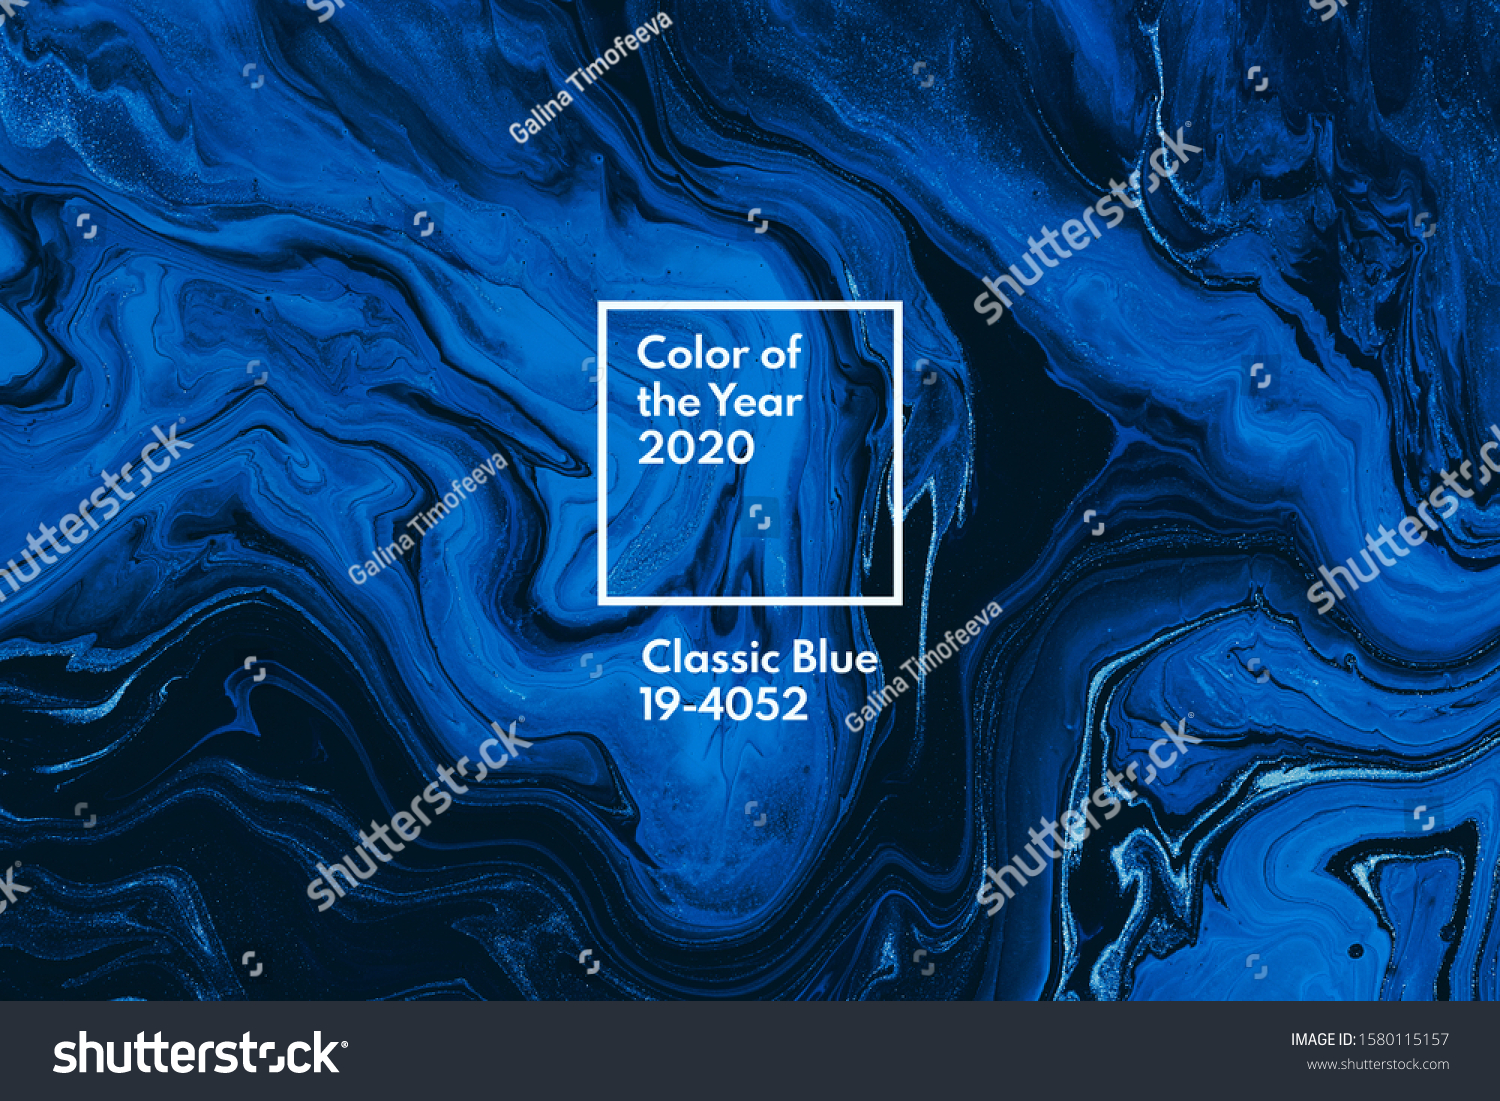 Classic blue color of the year 2020. Bright blue and white marble background. Liquid stripy minimalistic trendy paint texture. Abstract fluid art. Acrylic and oil flow modern creative backdrop #1580115157